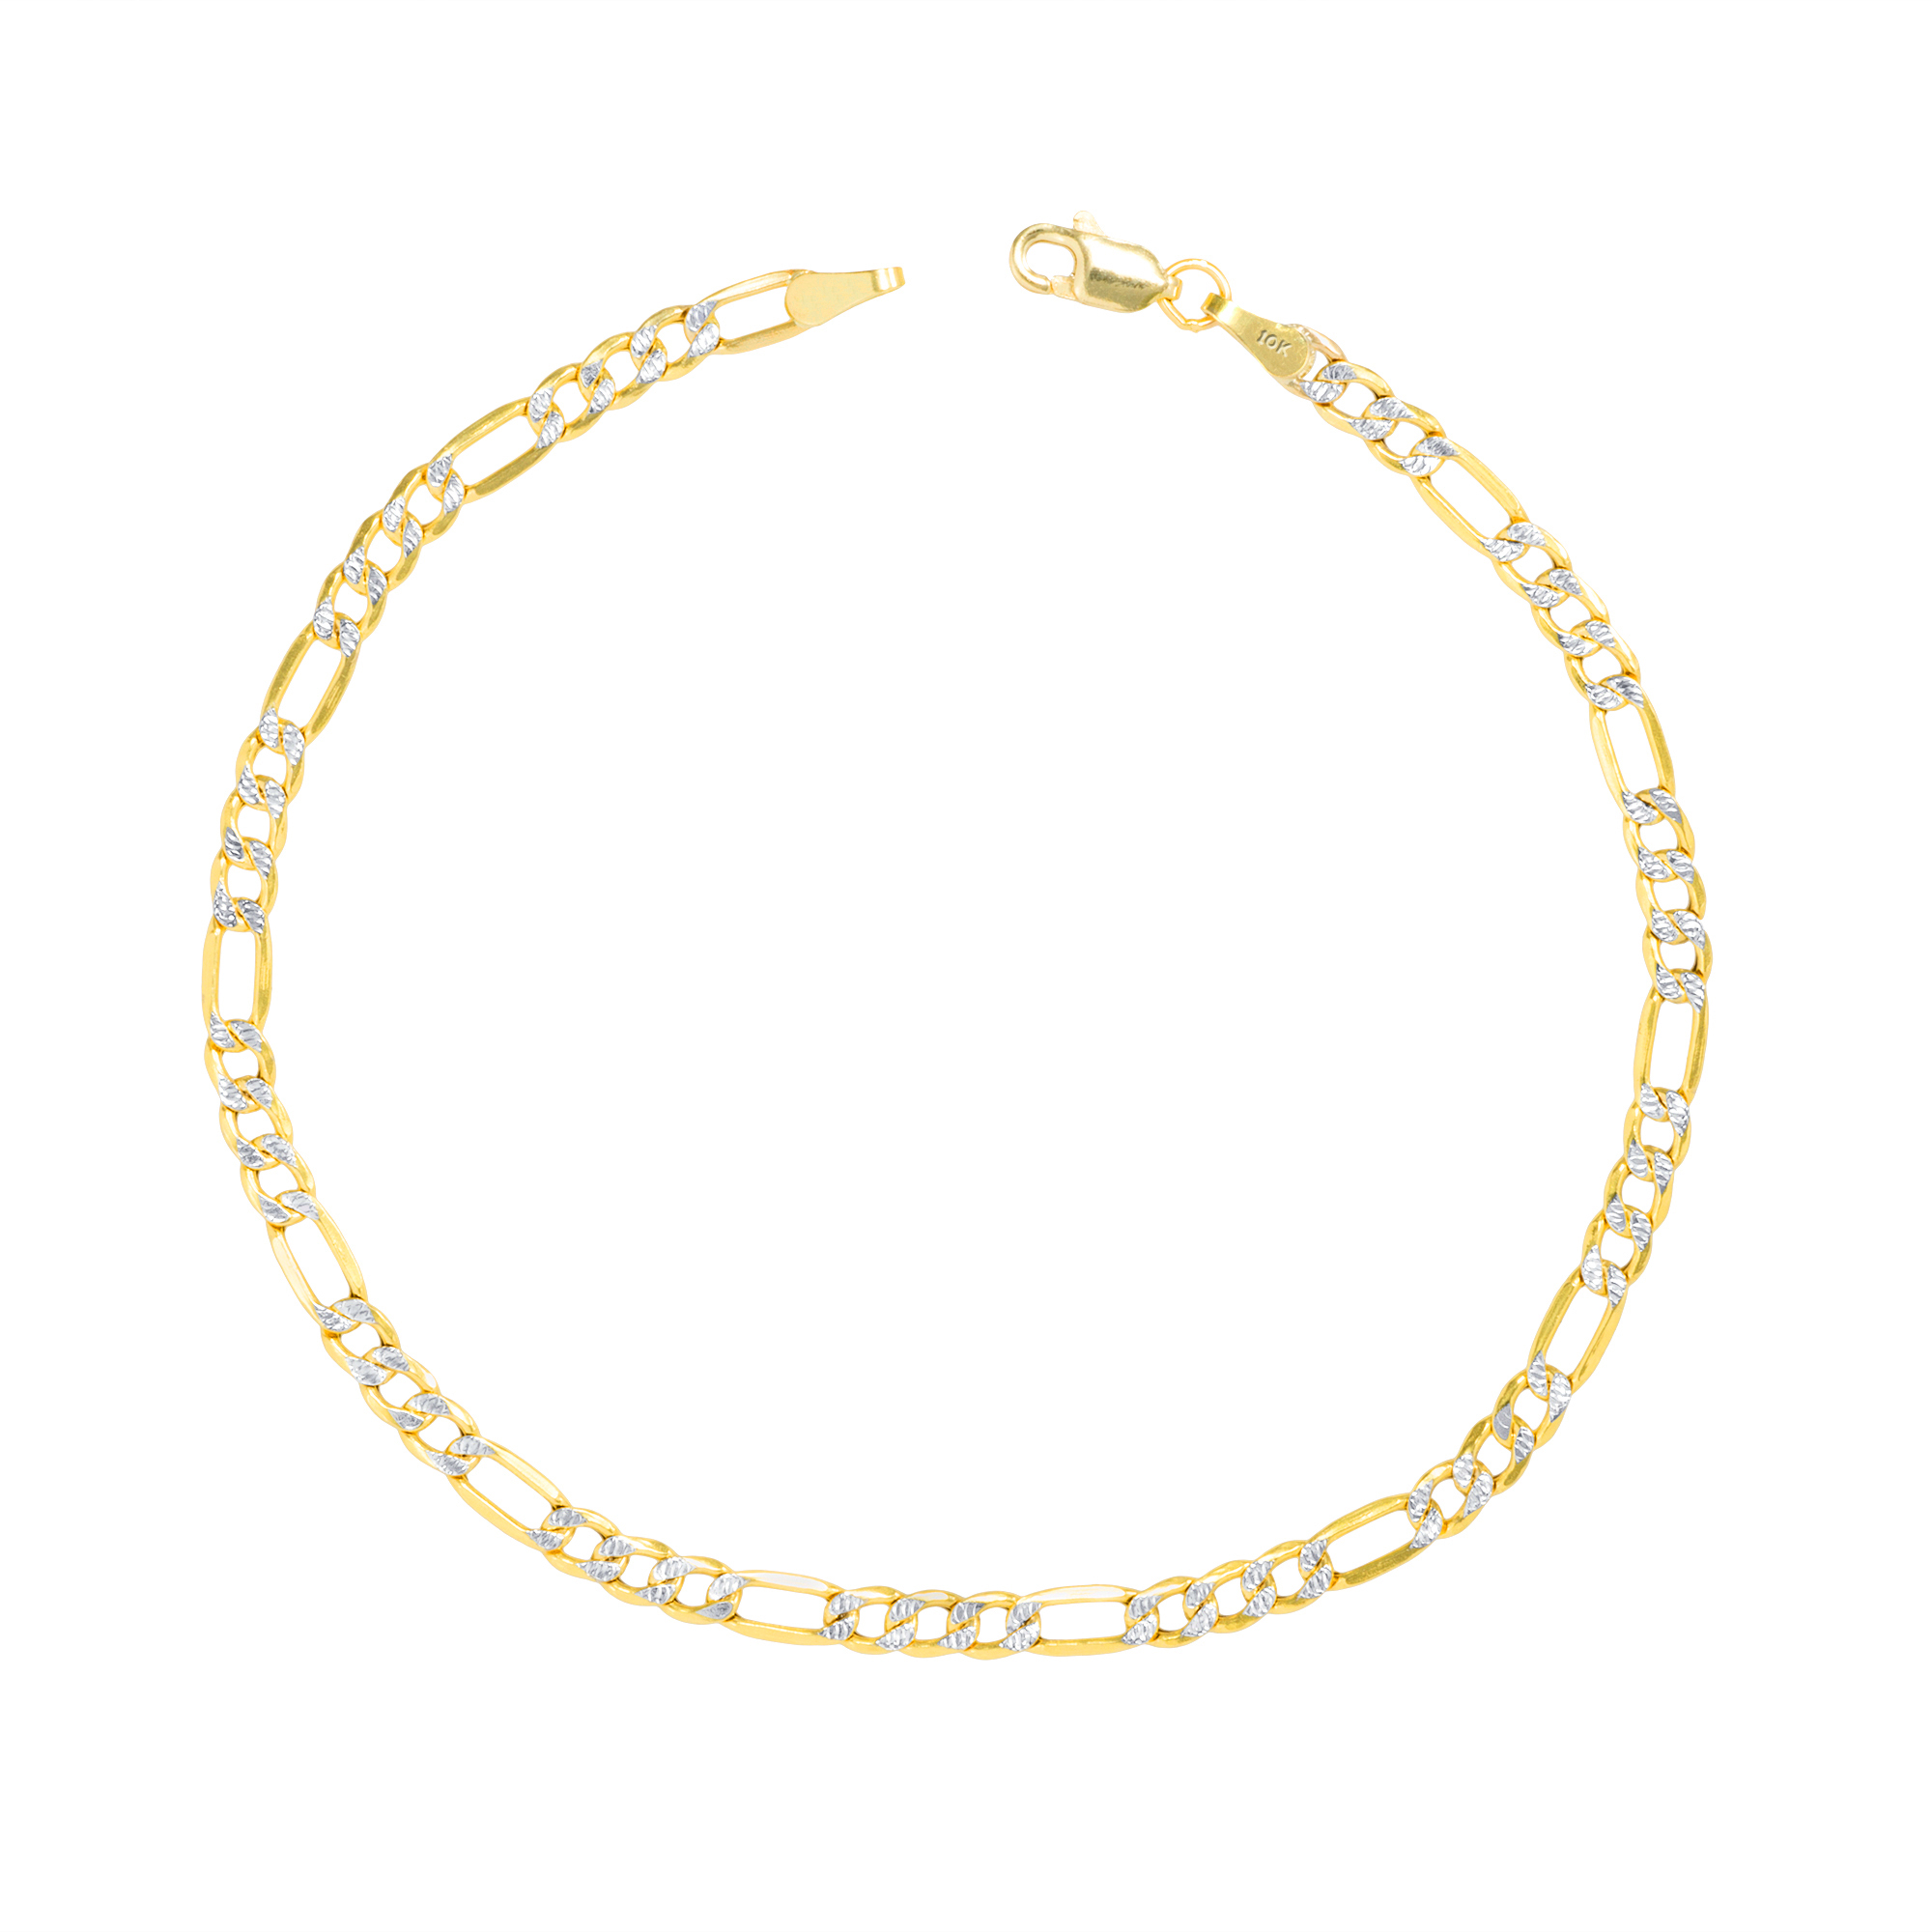 10K-Yellow-Gold-2-5-9mm-Diamond-Cut-White-Pave-Figaro-Link-Chain-Bracelet-7-034-9-034 thumbnail 10